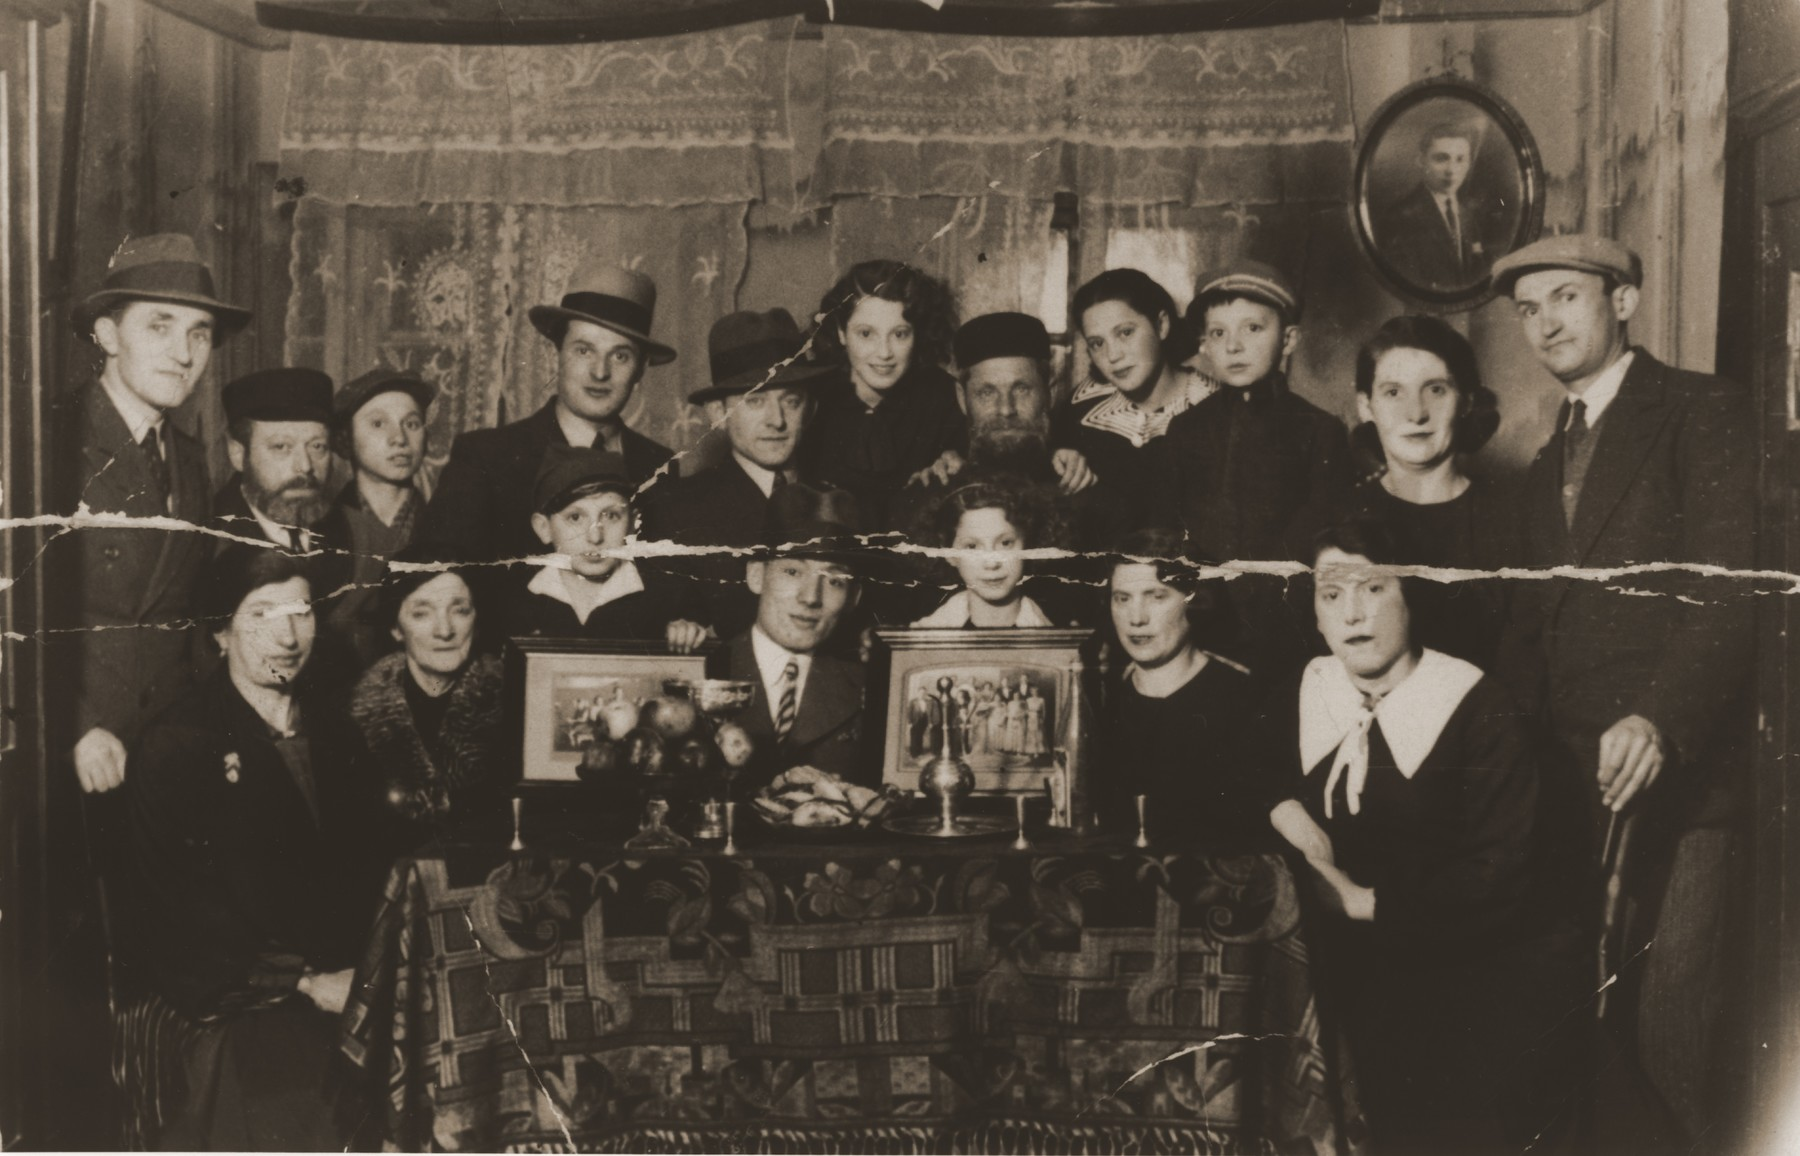 Members of the extended Berland family gathered around the table in their home in Chelm.    Among those pictured are Hanna Rachel Berland; oldest son Jankiel Berland and his wife Hanna; daughter Ethel and her husband Israel Lis and their three daughters Tobcia, Judith and Esther; daughter Sara and her husband Szymon Hilf, their son Heniek; daughter Chavele and her husband Avram Globen and son Yossele; and the four sons of the daughter Syma Berland Grinwald.